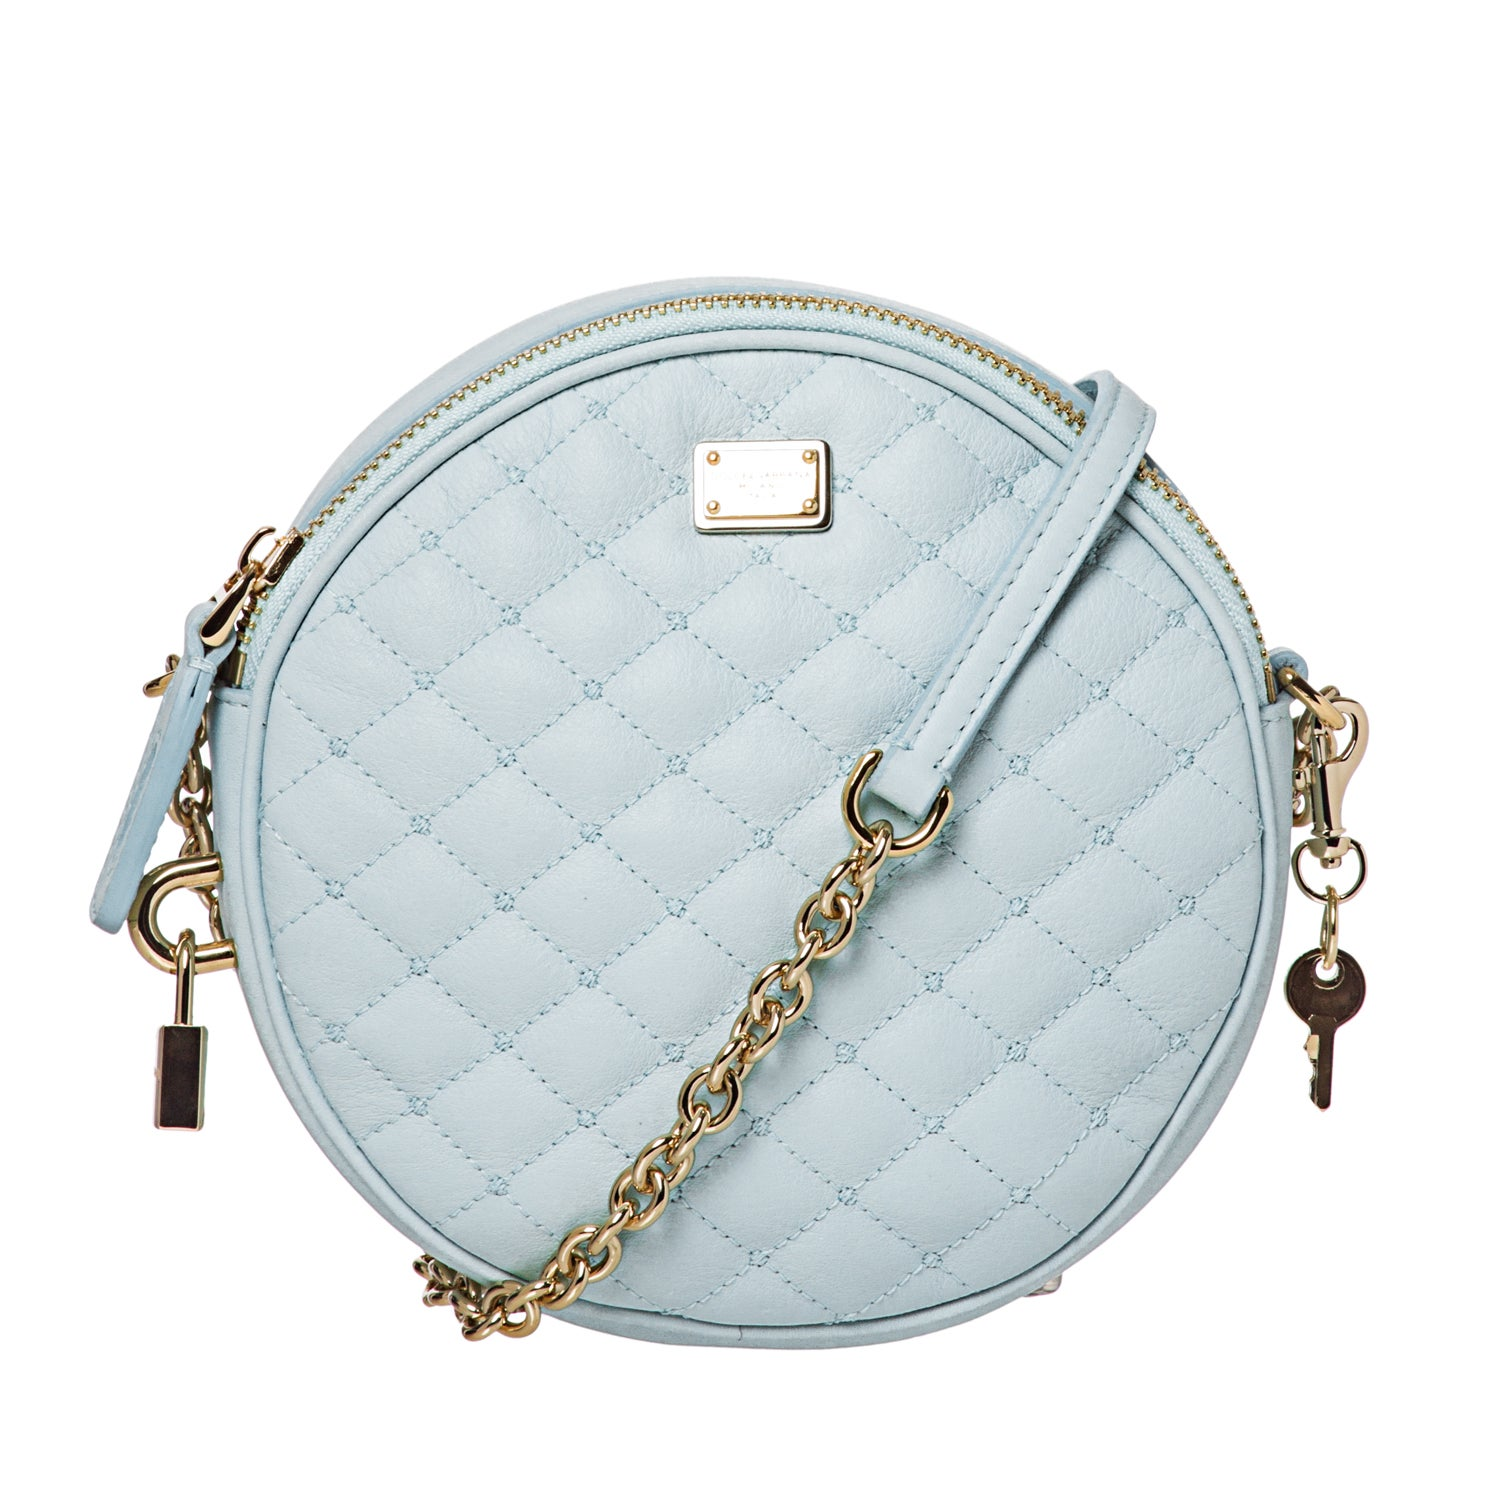 Dolce & Gabbana Round Quilted Leather Crossbody